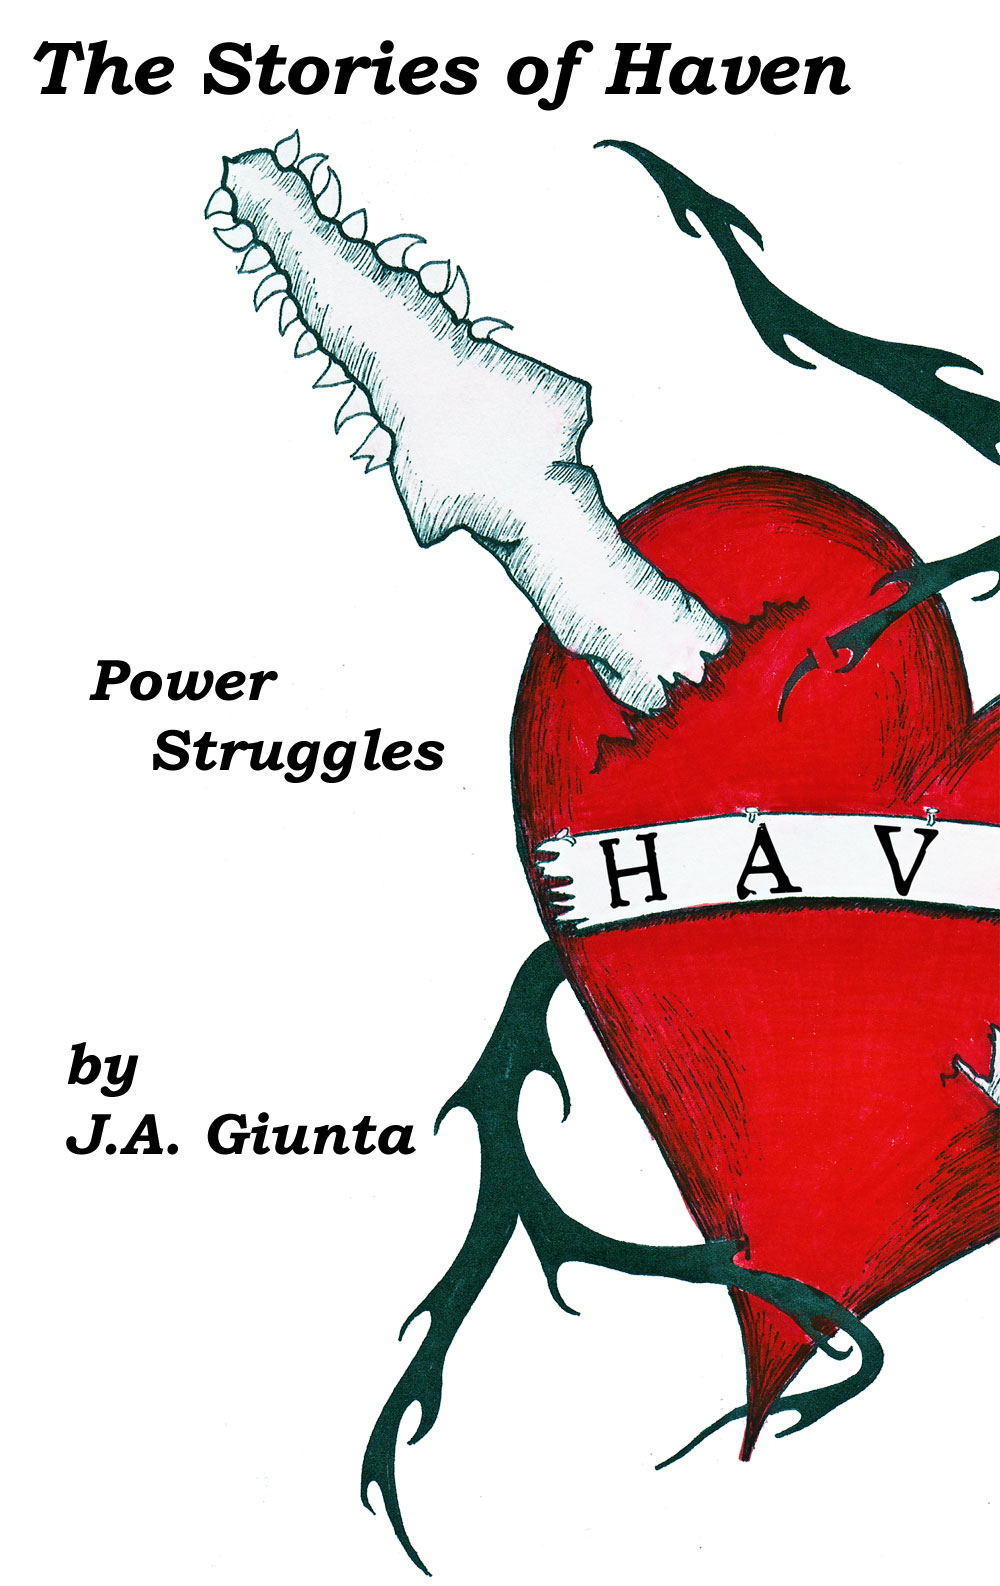 The Stories of Haven: Power Struggles